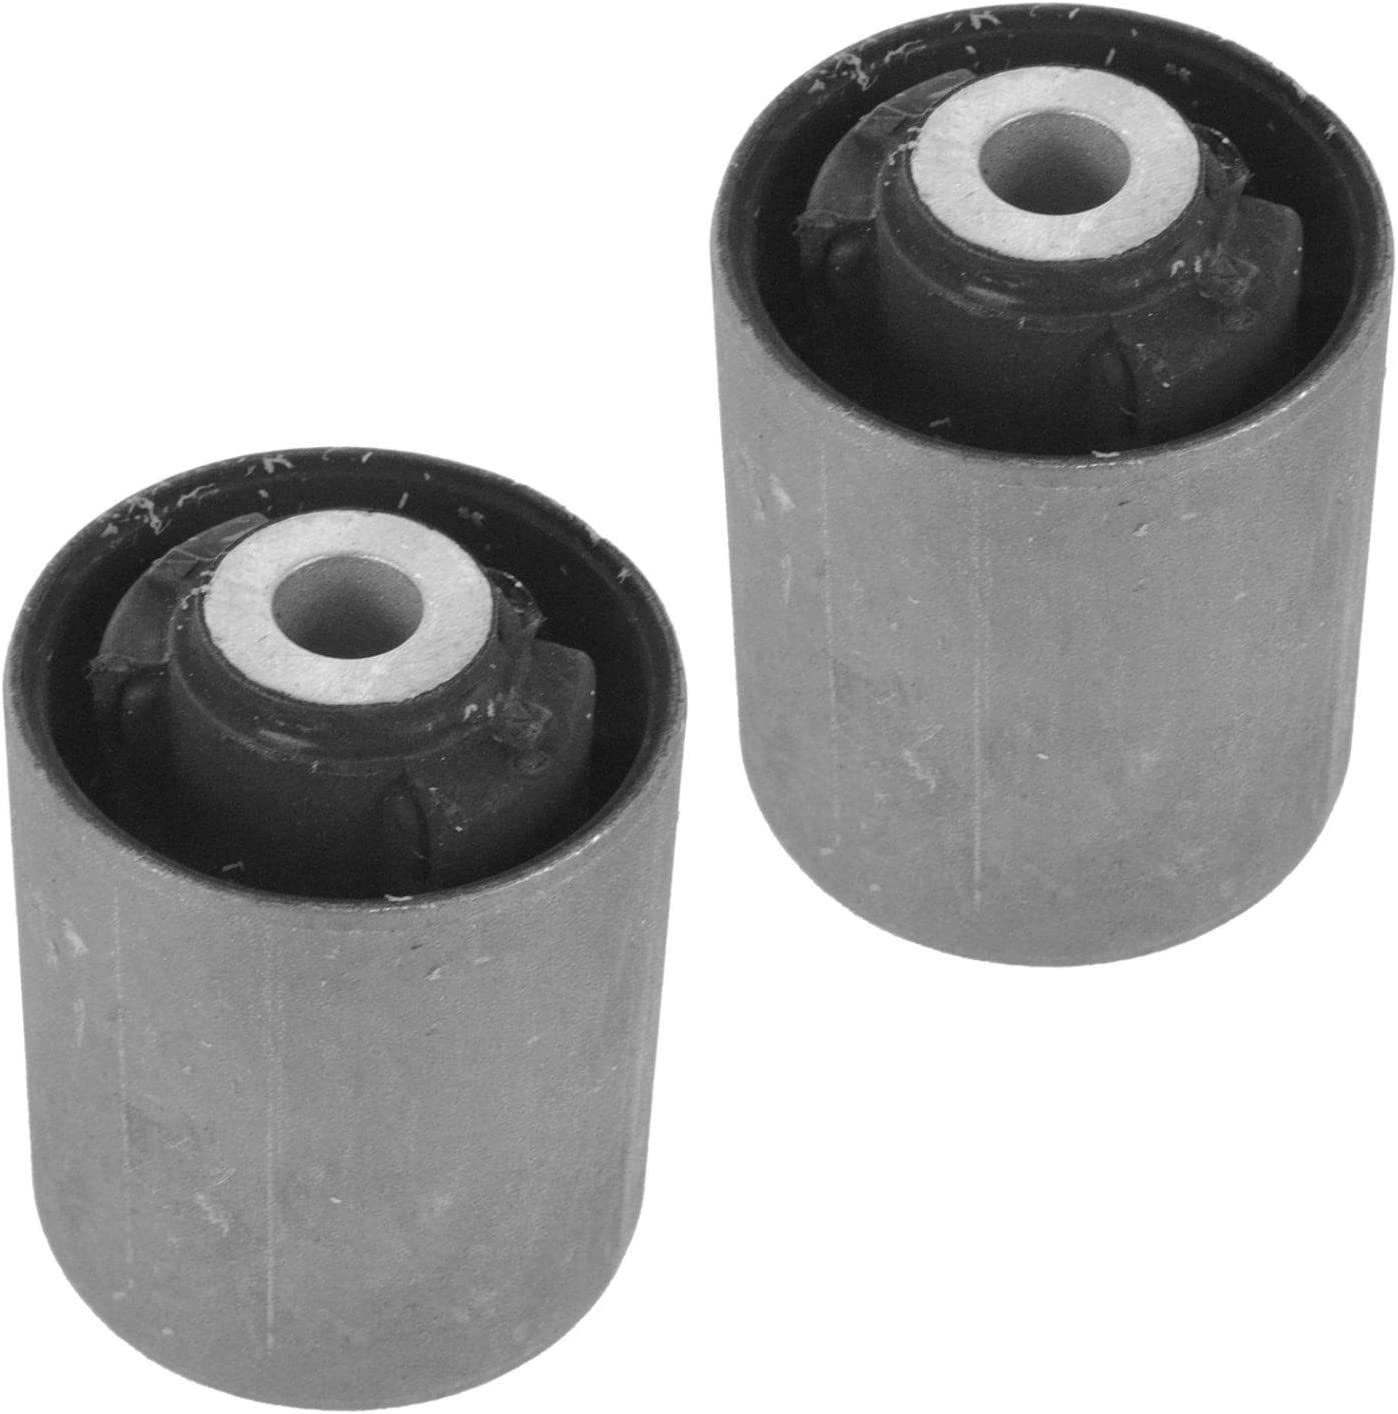 New Control Arm Bushing Front Lower Forward Rear LH RH Pair Set For LS460 LS600h